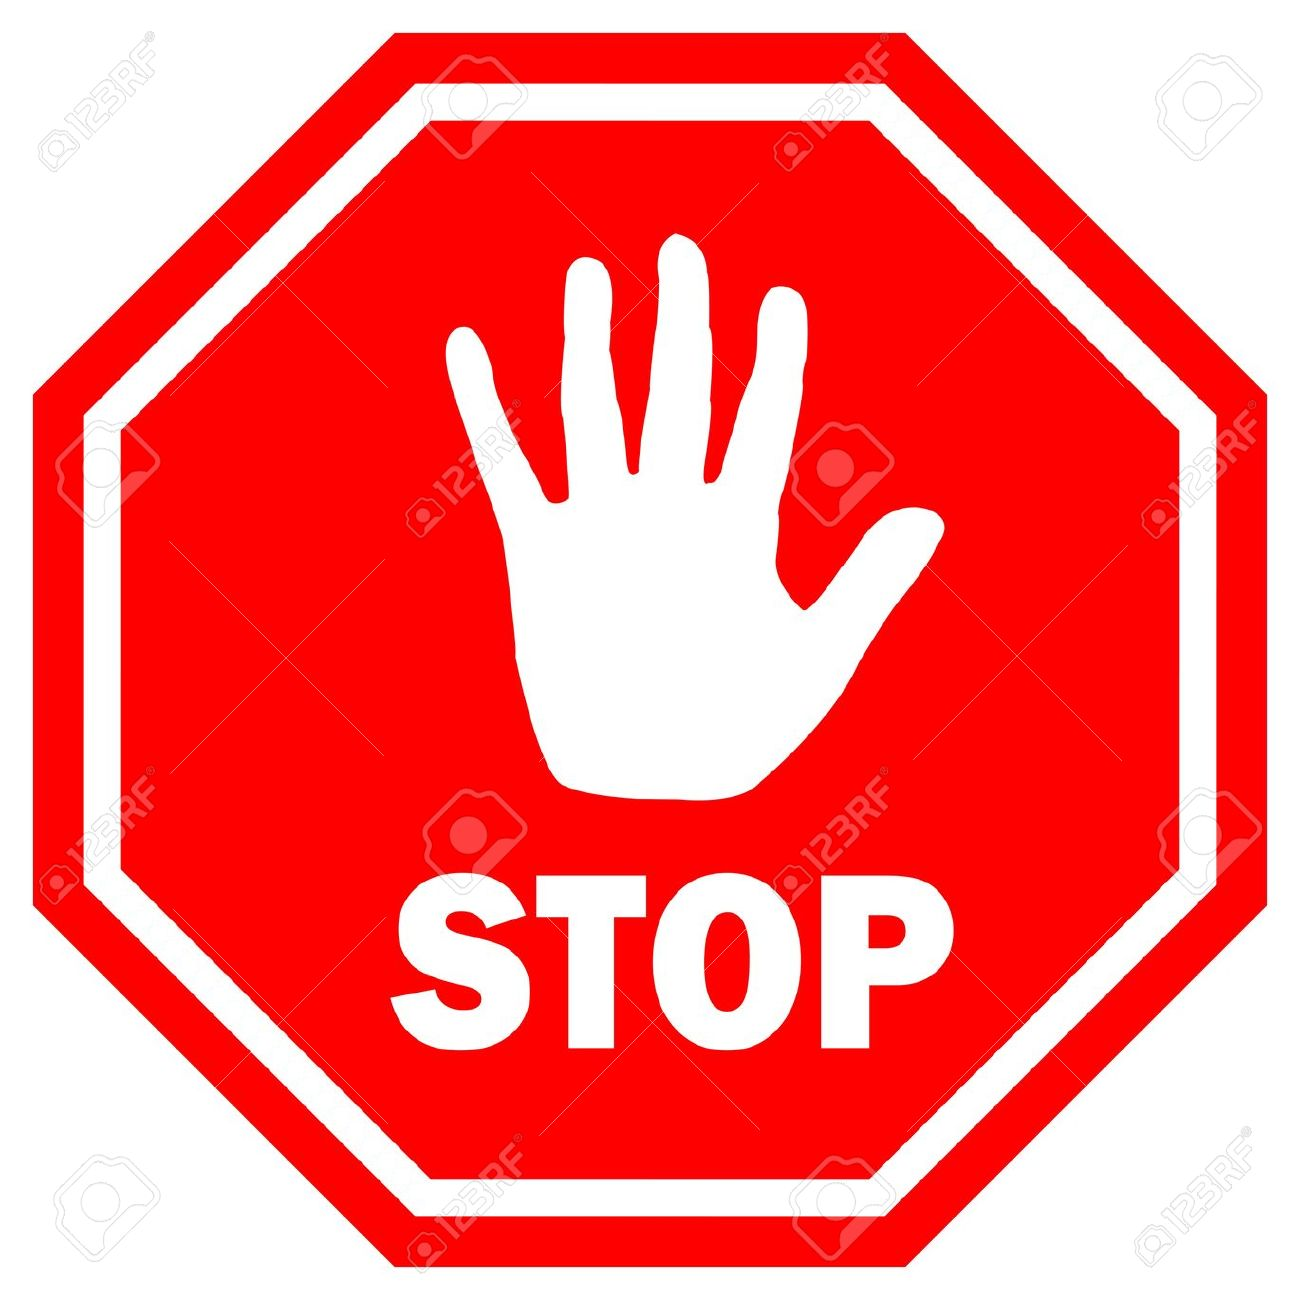 Stop sign clip art. Best clipart images clipartion